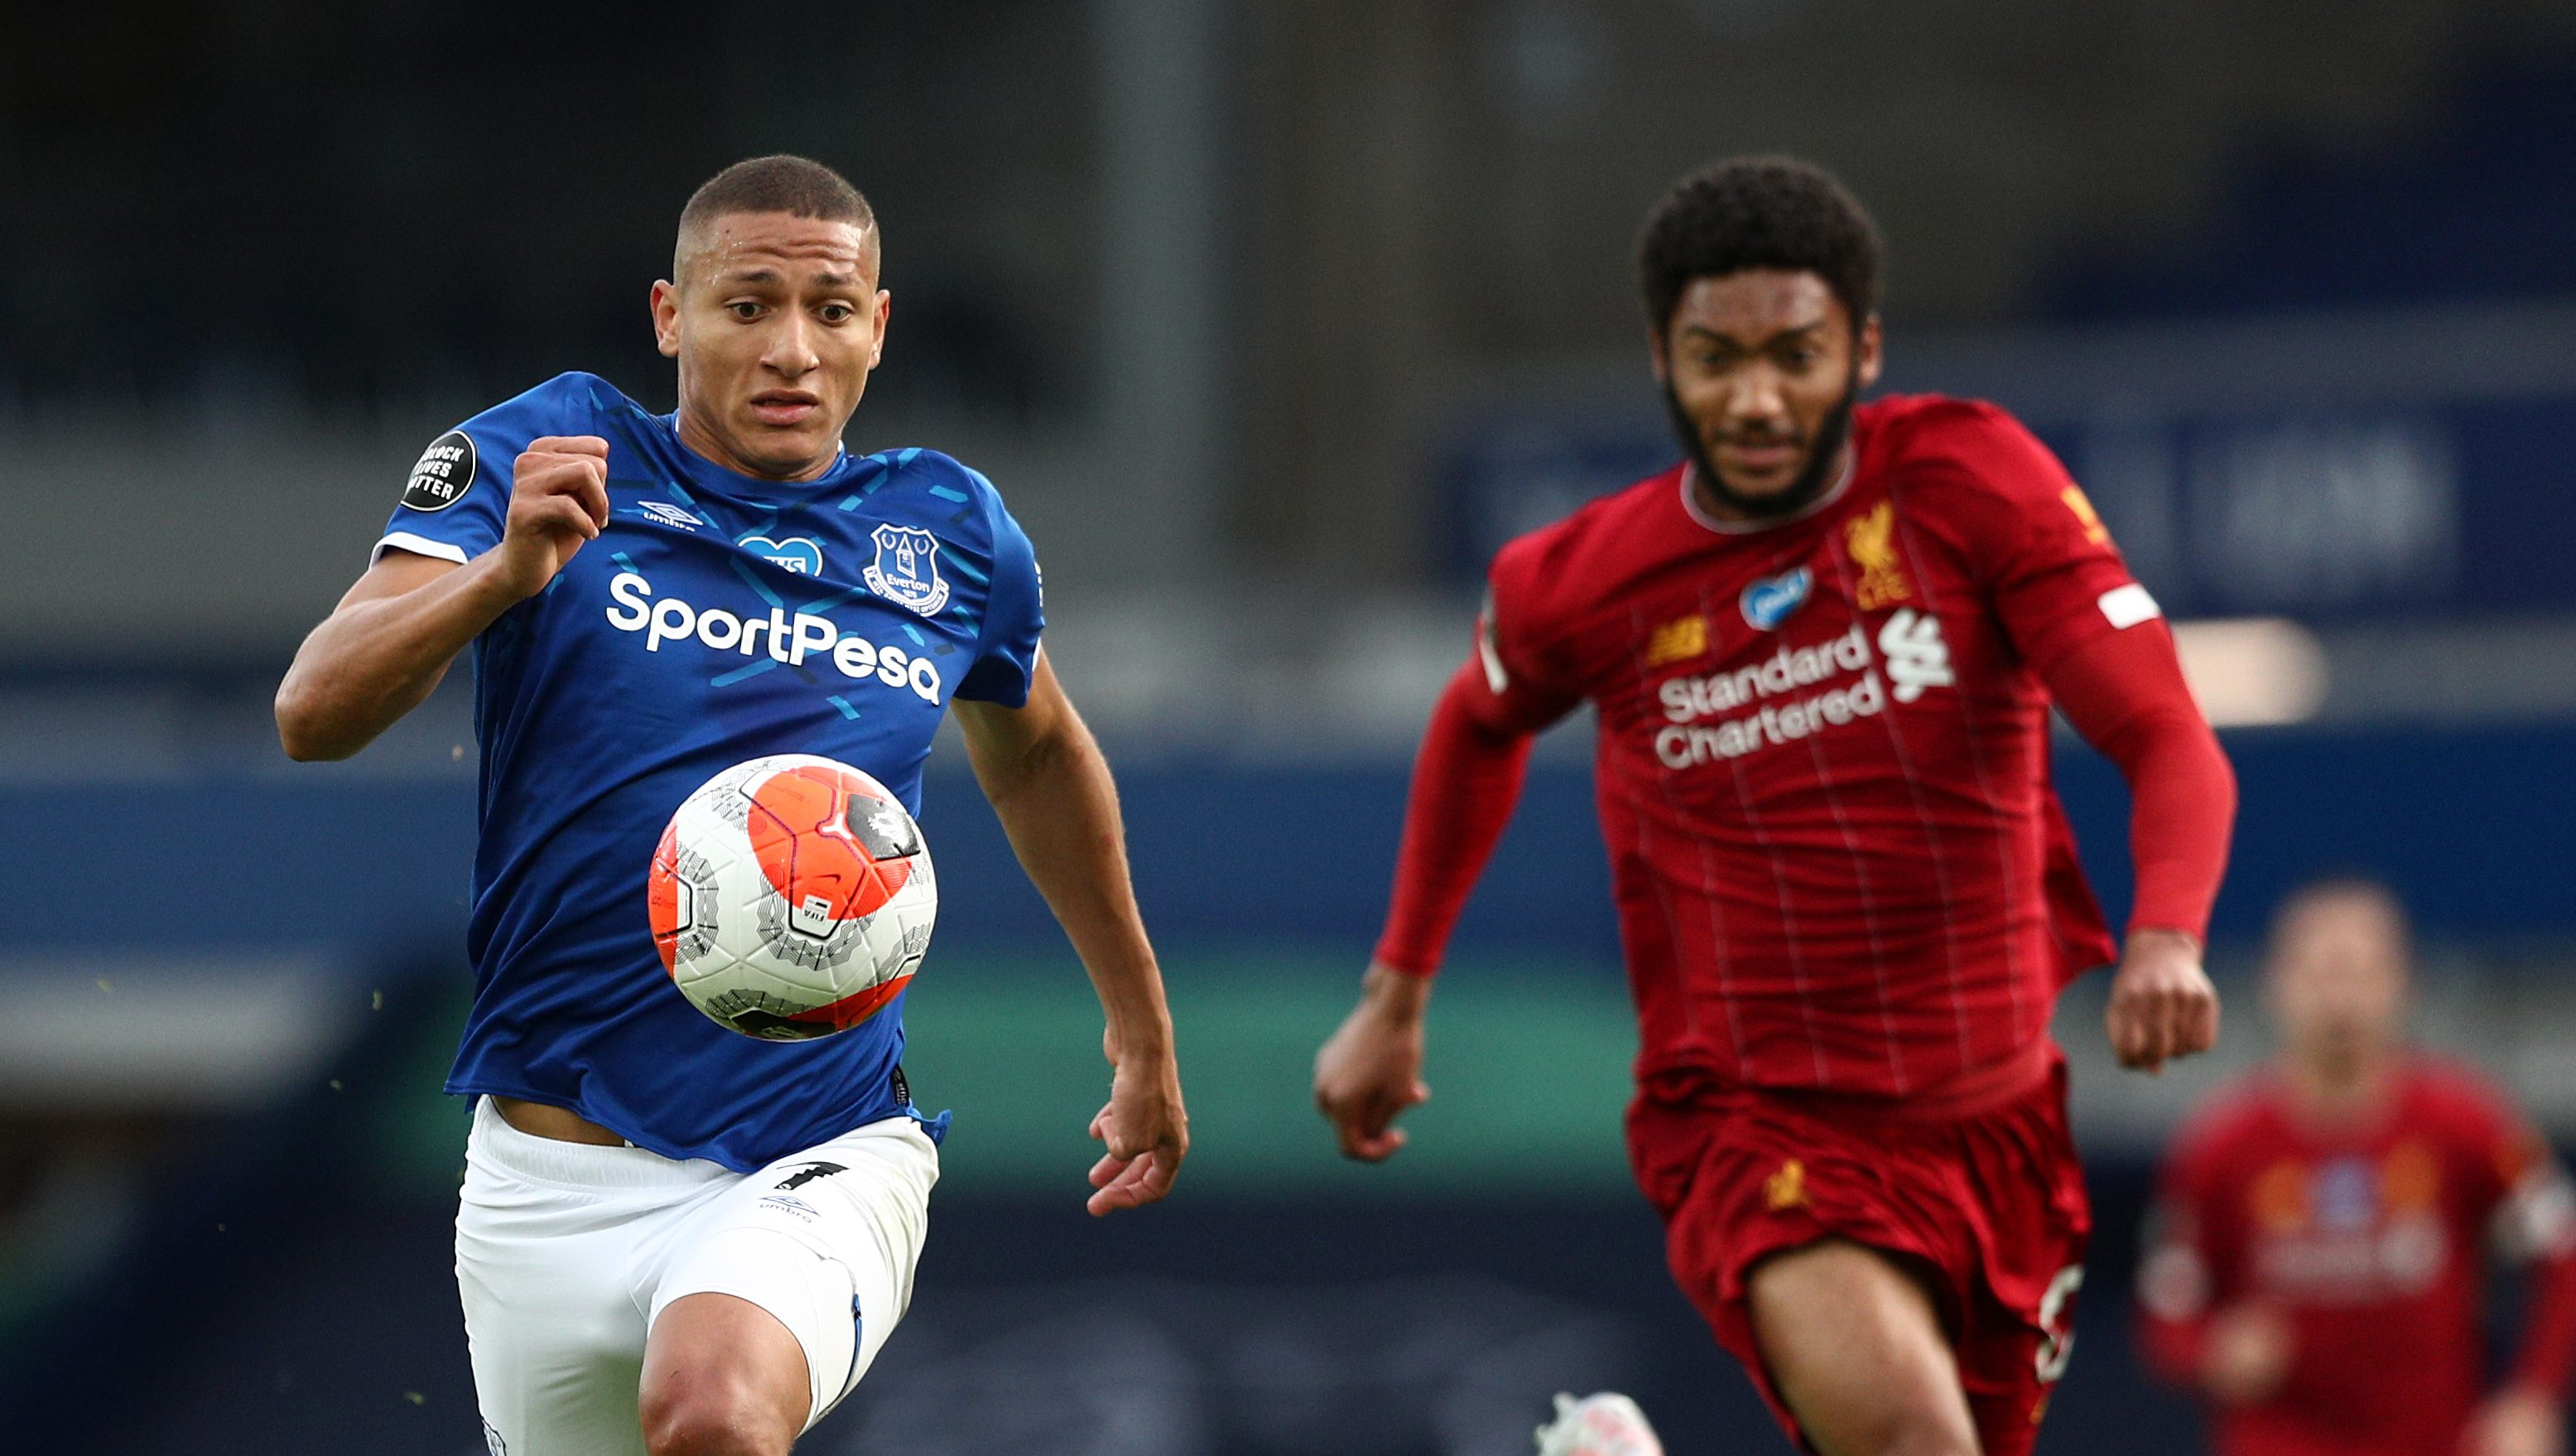 Everton Liverpool recap